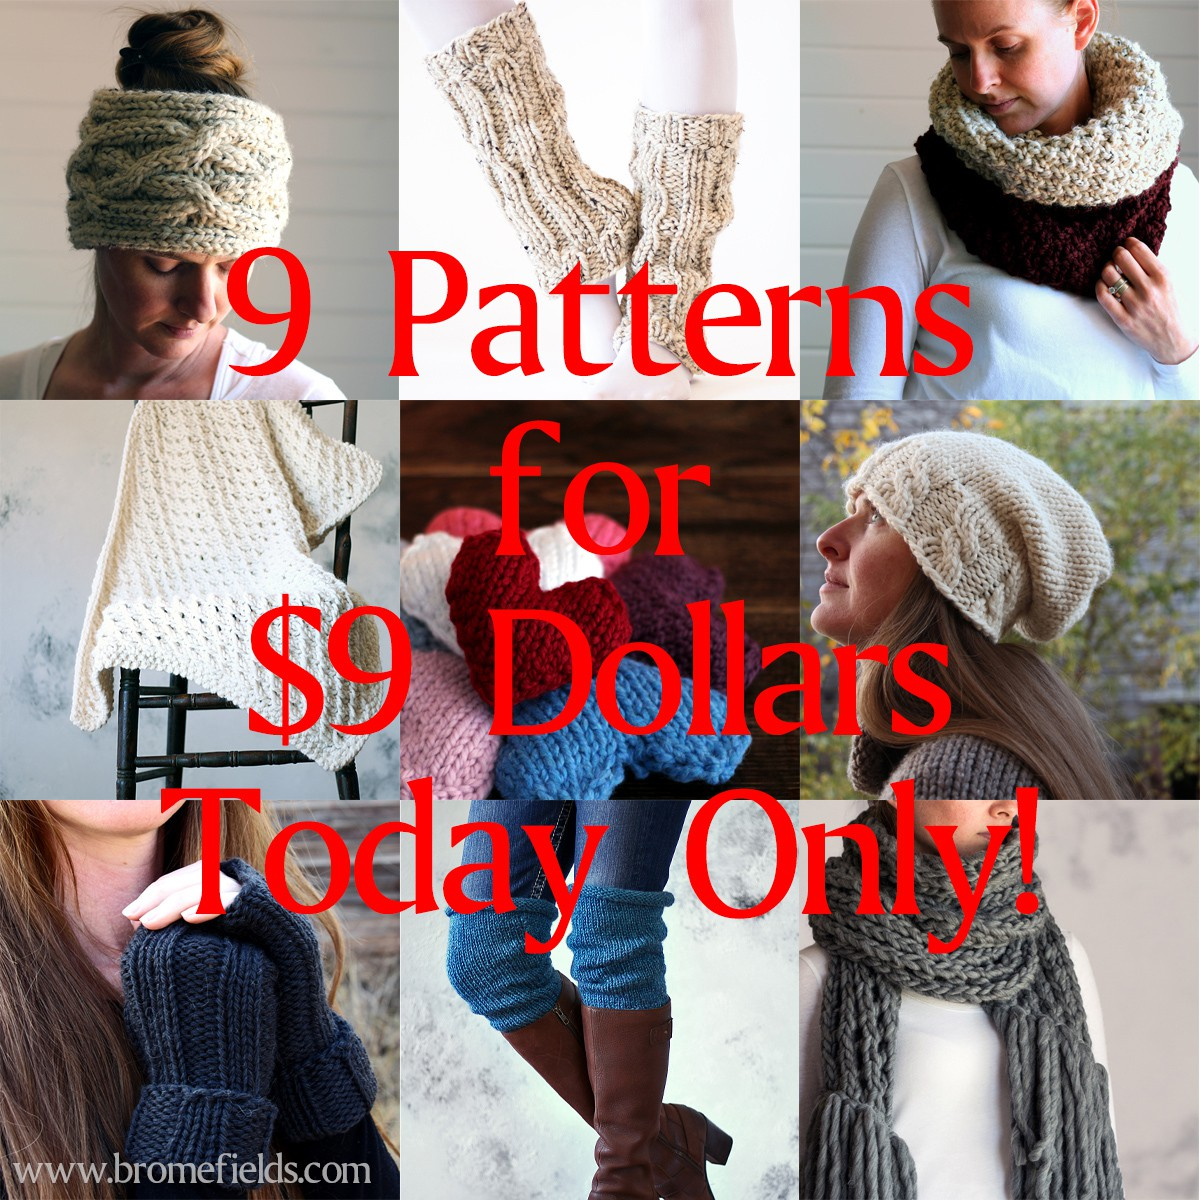 9 Knitting Patterns for 9 Dollars! Pick and choose the ones you like!